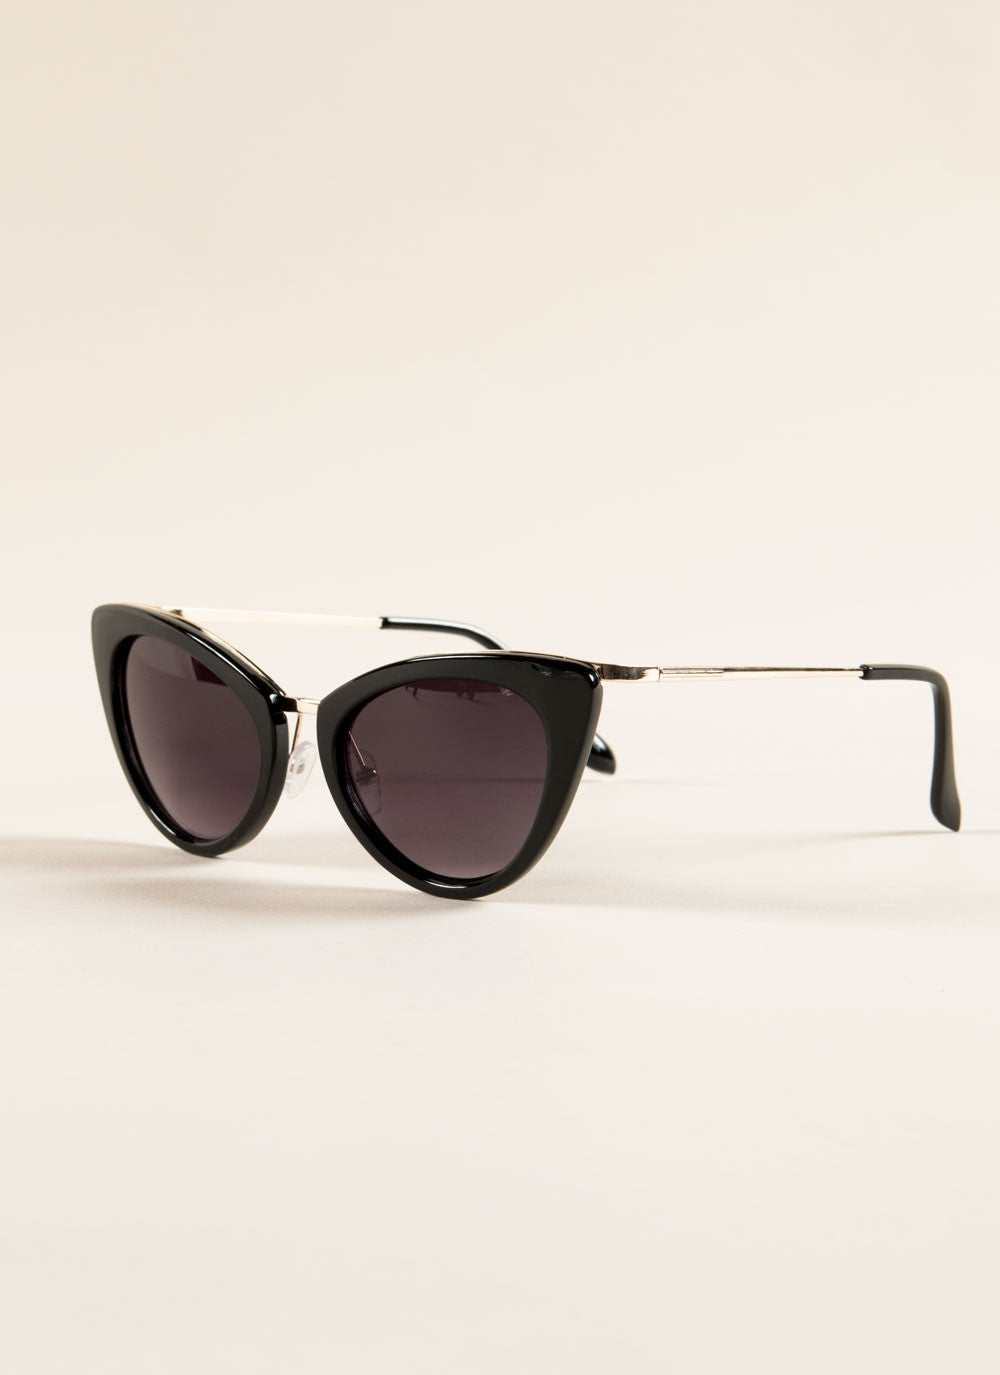 Hollywood Cat Eye Sunglasses , Accessories - Fashion Trend LA, Fashion Trend LA  - 3